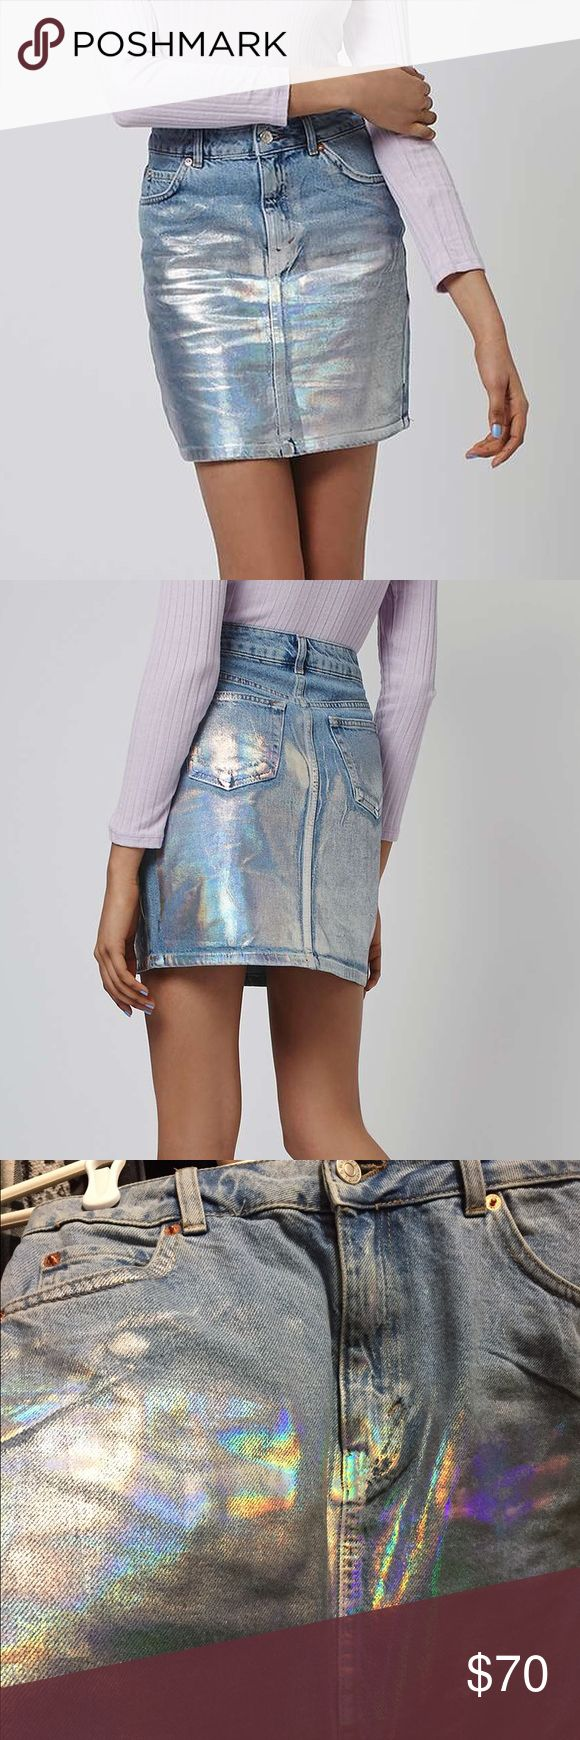 Rare Holographic Painted Jean Pencil Skirt I found this skirt quite a white ago and fell in love! It was the last one online and I had to get it thinking I could squeeze into a 4 but I just can't with my hips. This skirt is such an amazing way to make a statement! It's never been worn or washed! Topshop Skirts Pencil